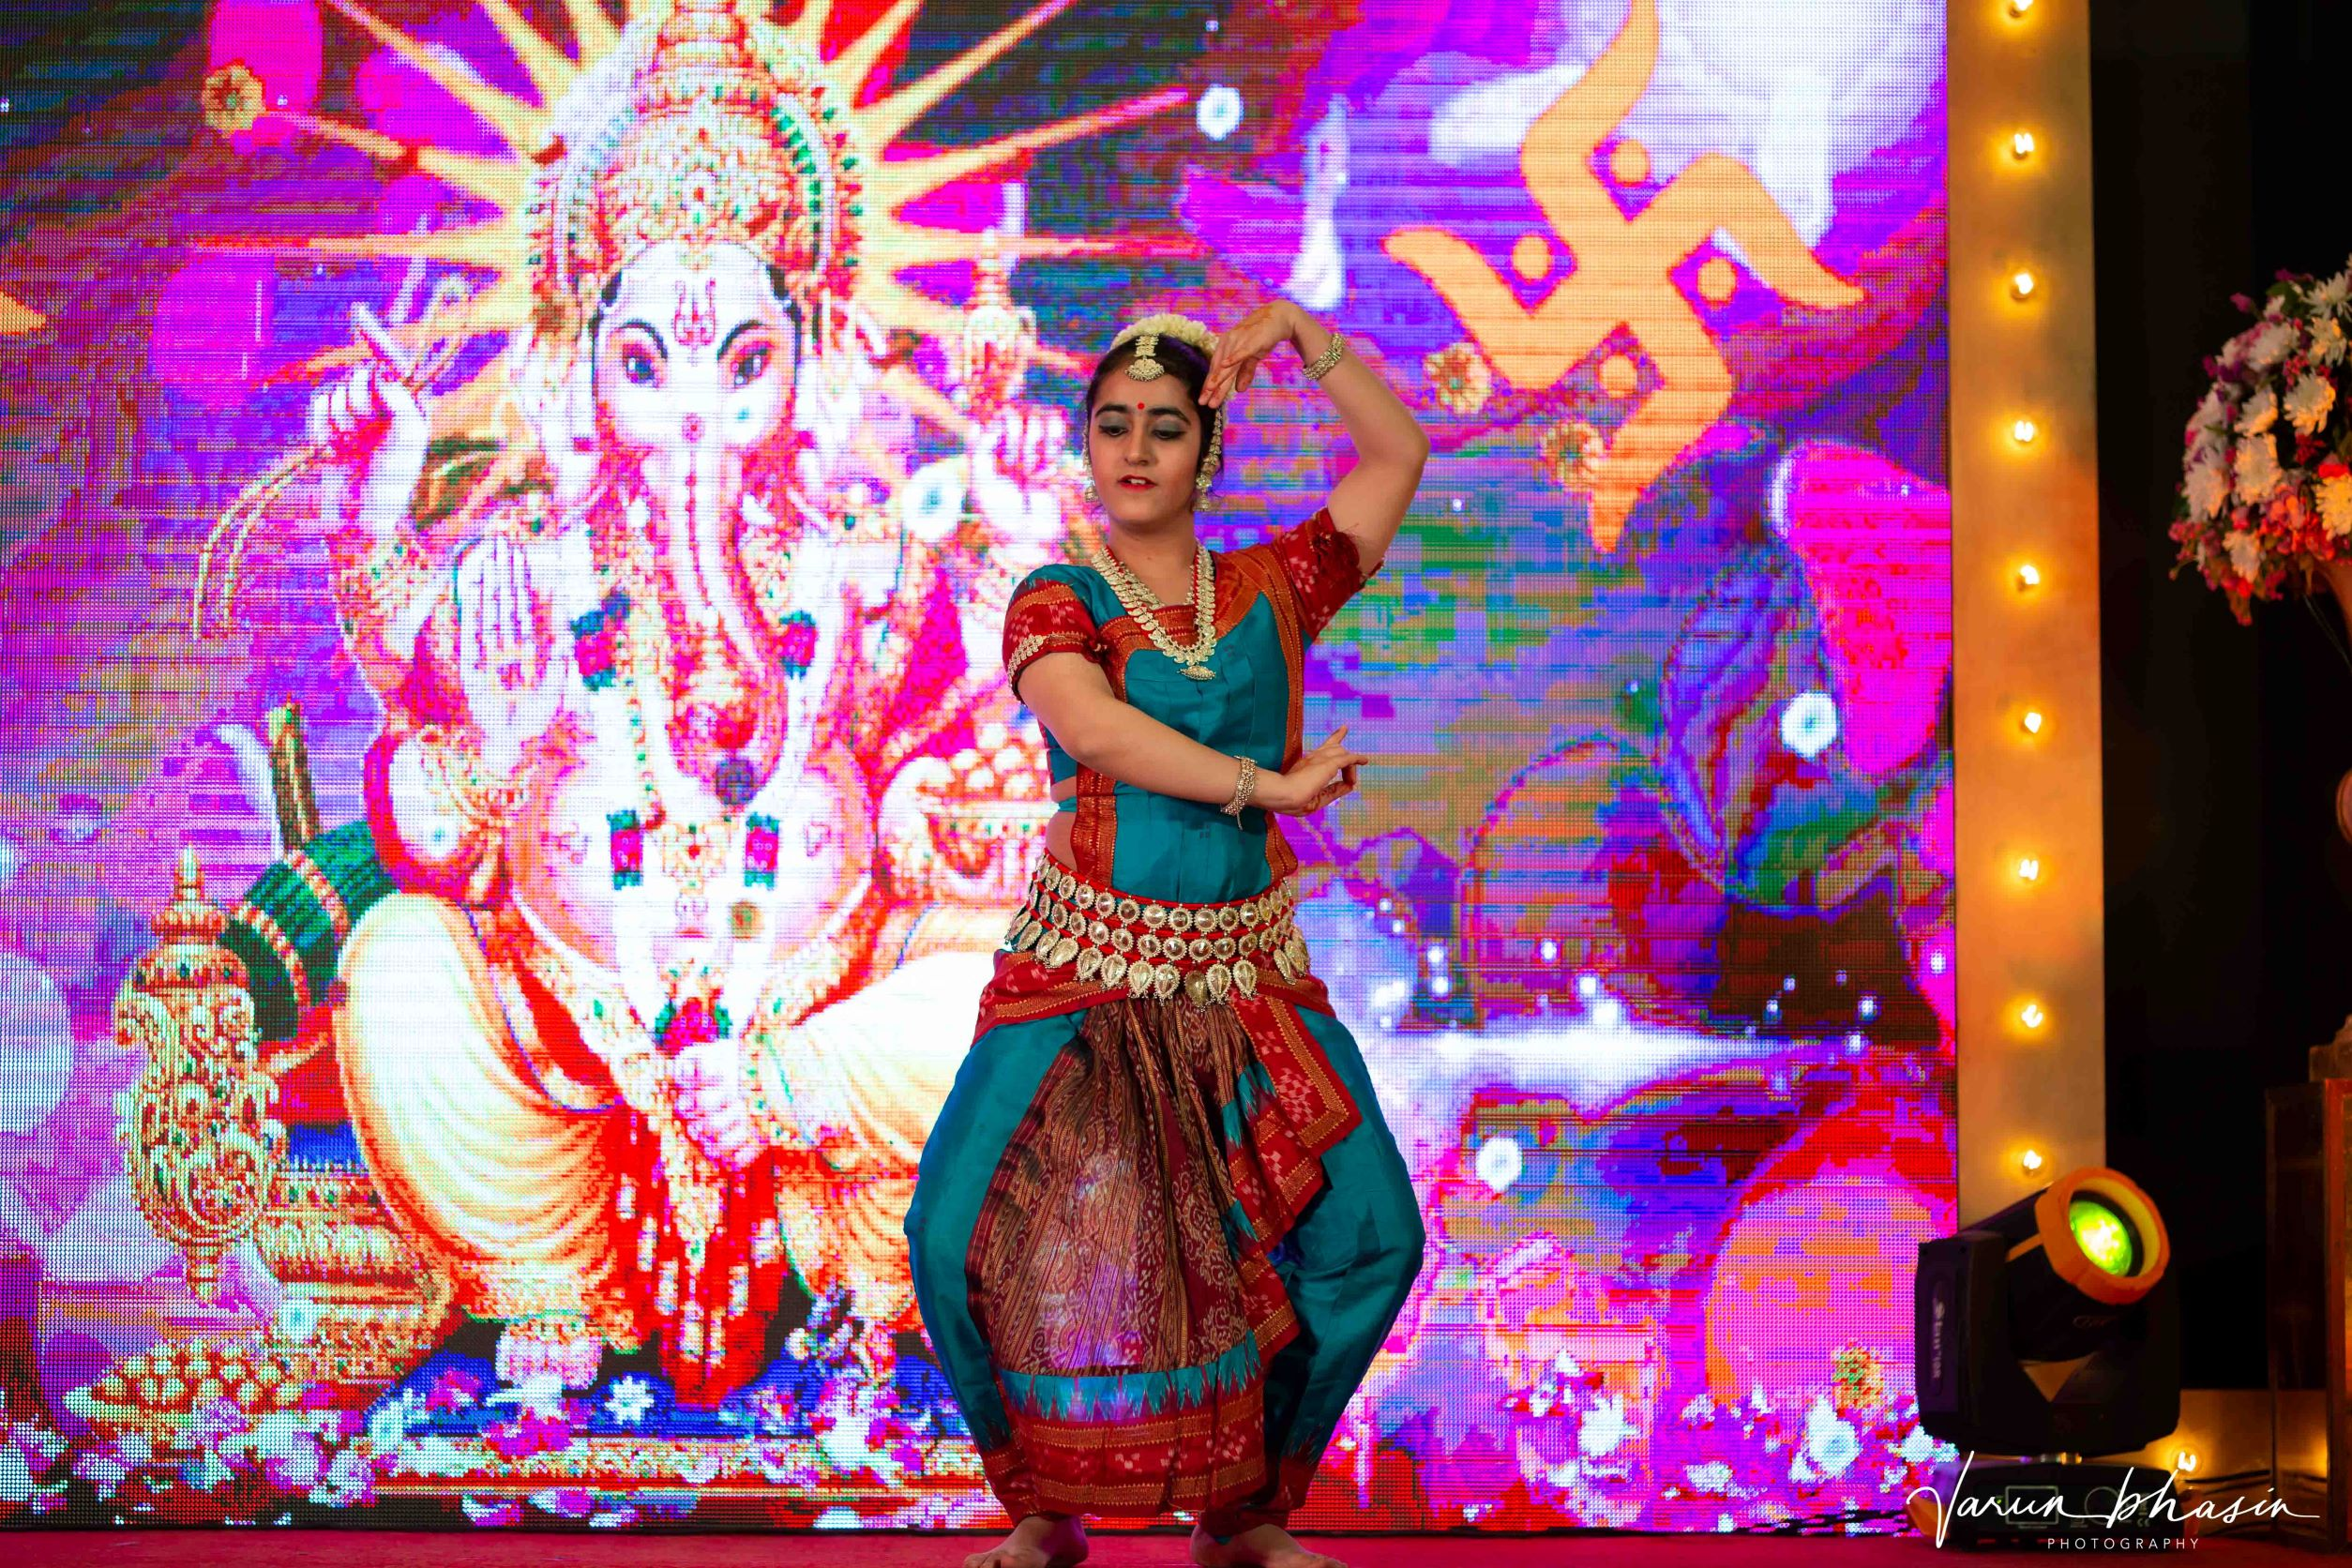 south indian dancer performing